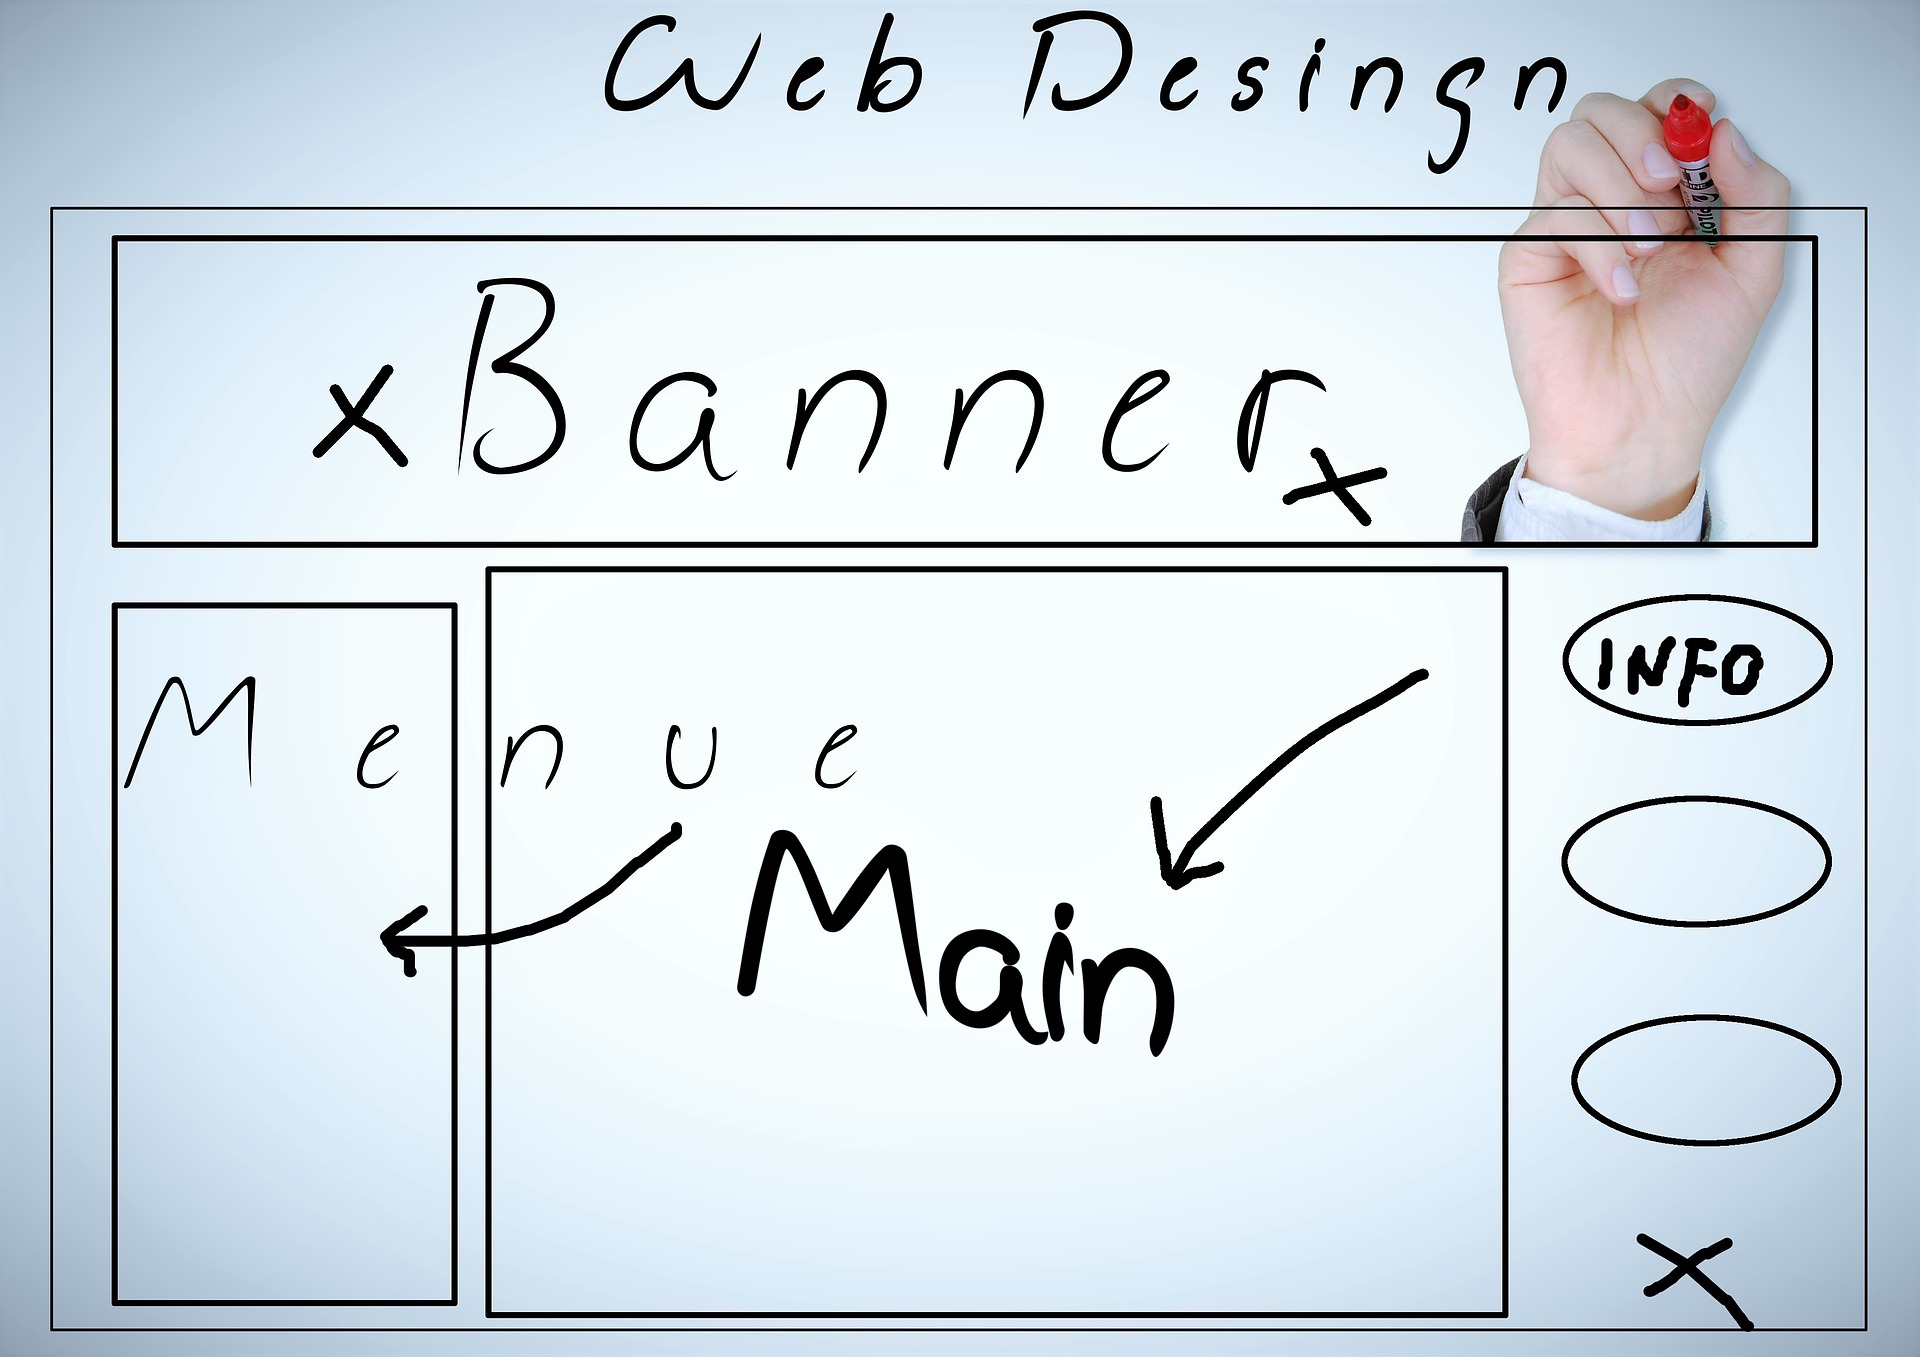 Get your website right to encourage direct bookings